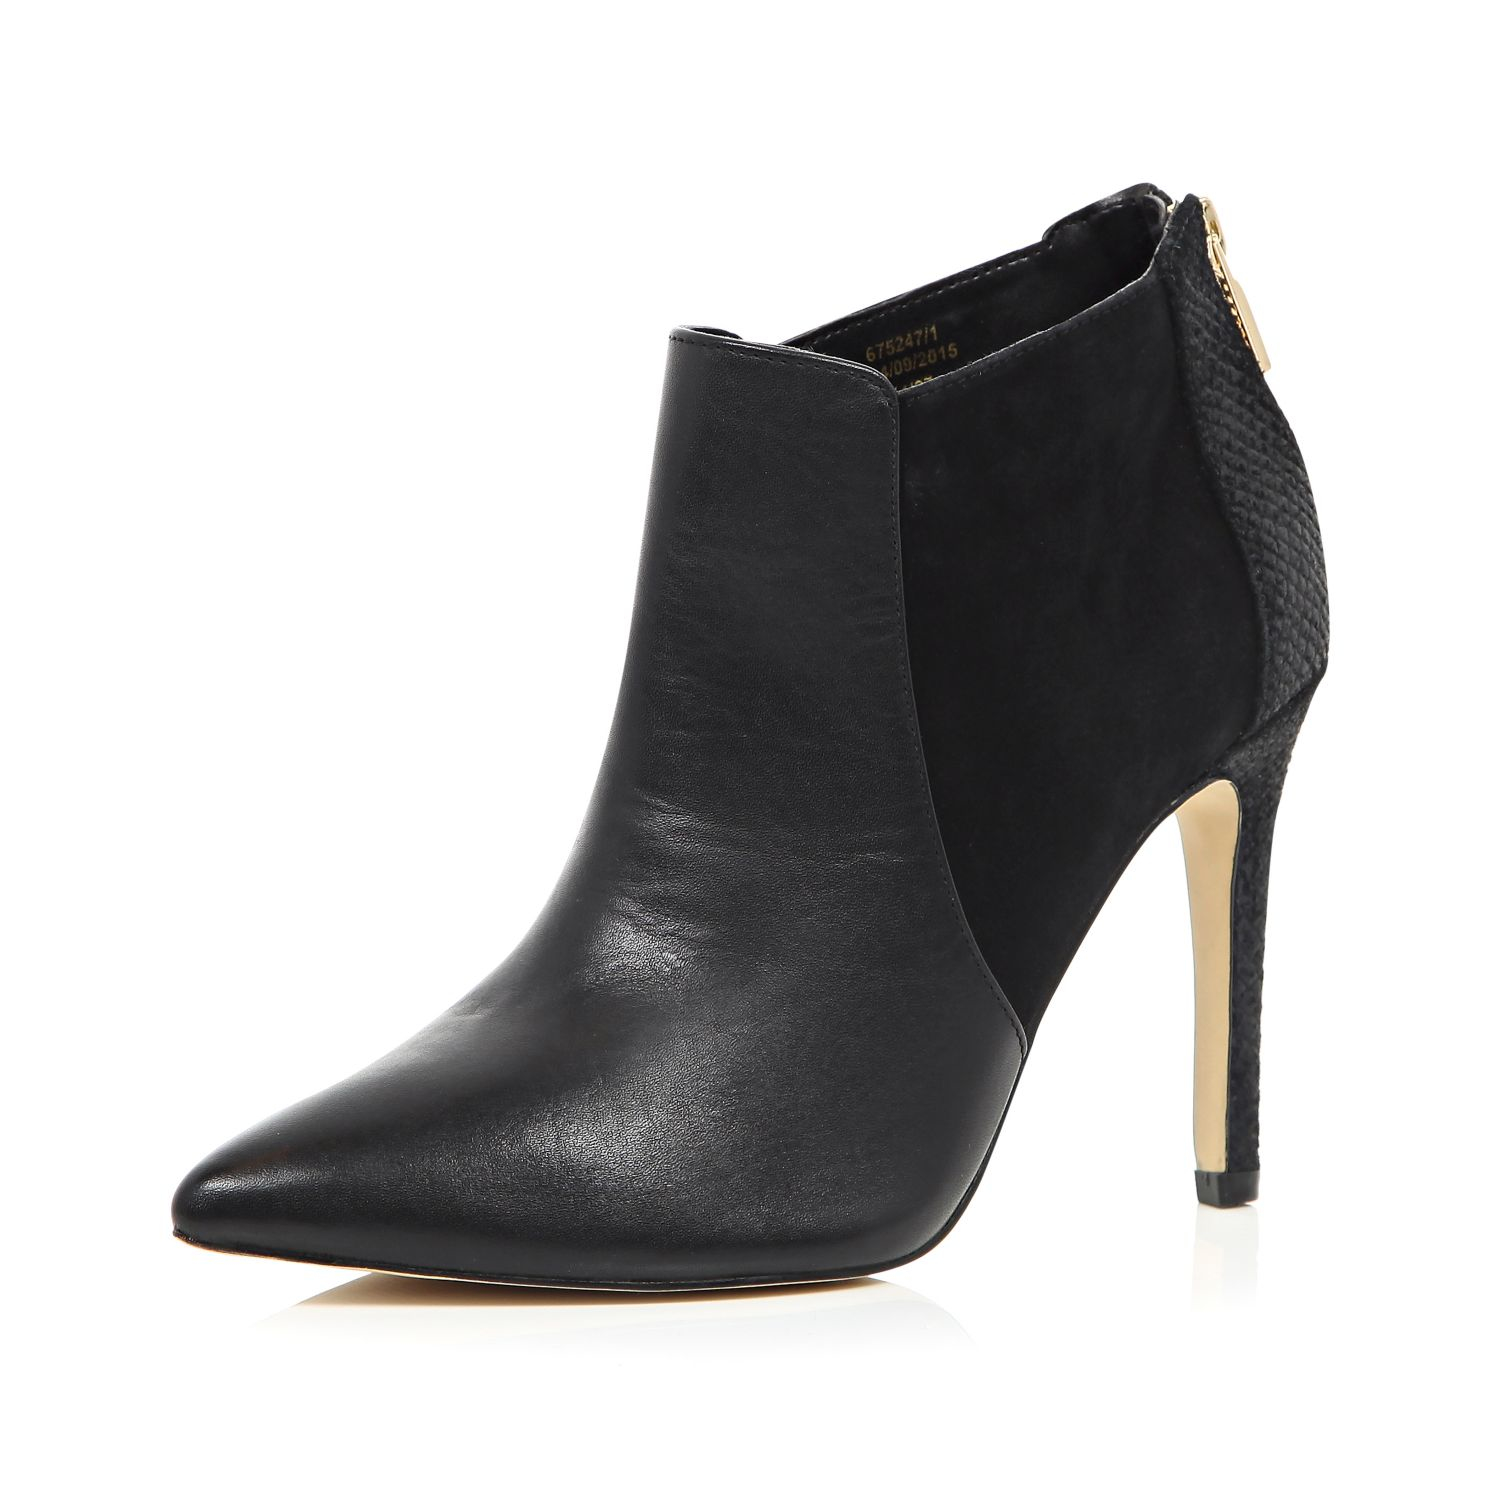 0d4f2e8724b6f Lyst - River Island Black Leather Pointed Heeled Ankle Boots in Black